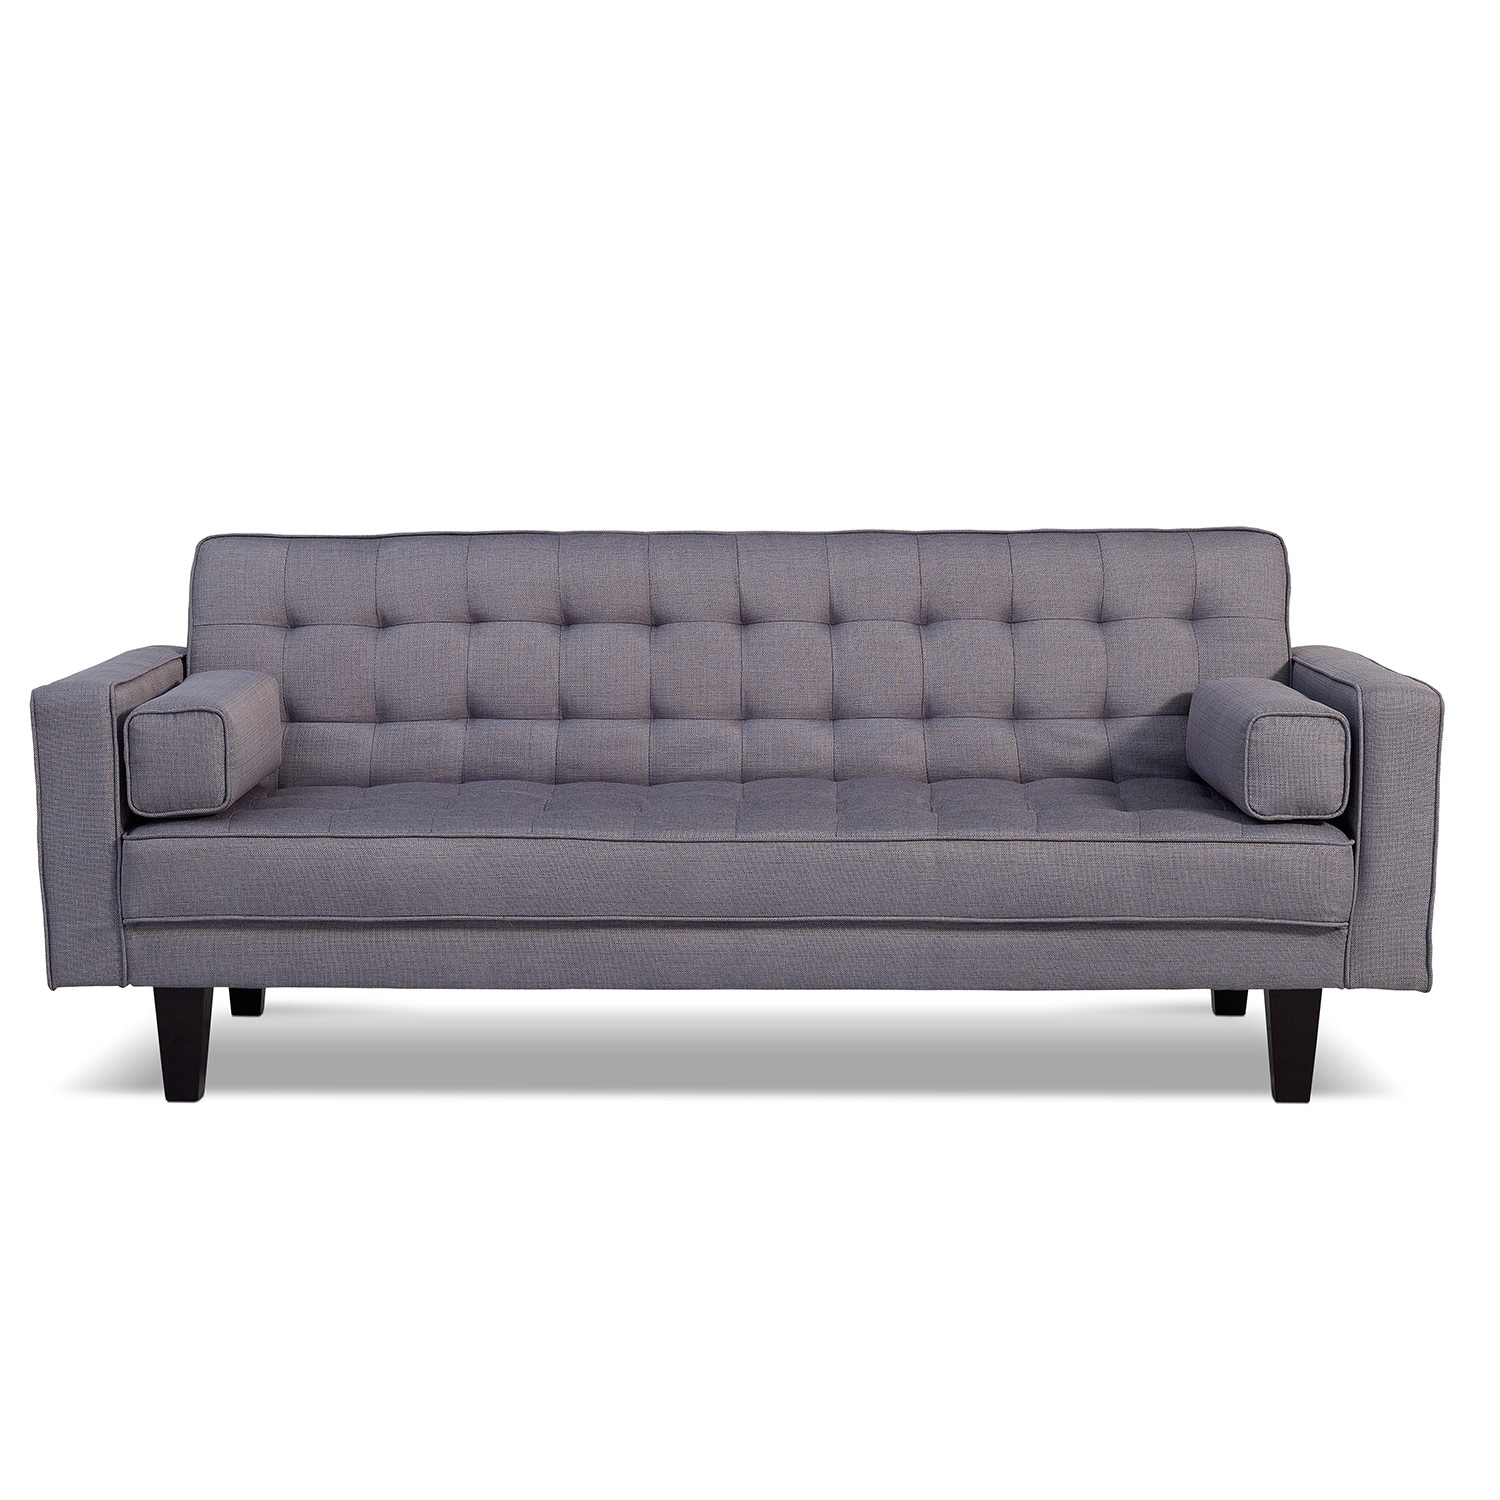 Britton futon sofa bed for Furniture sofa bed